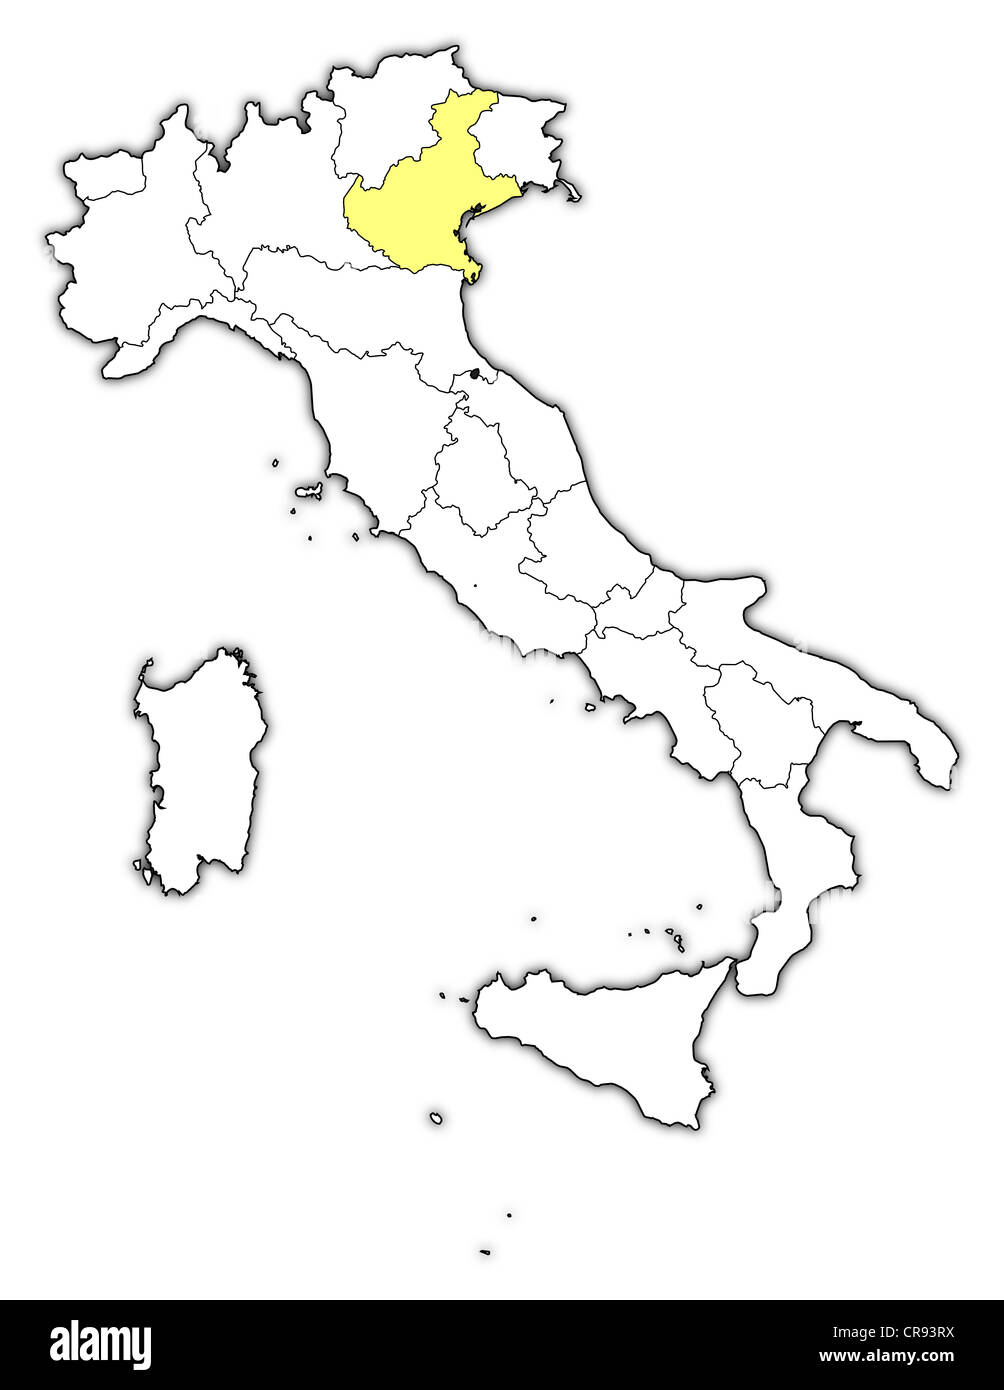 Political Map Of Italy With The Several Regions Where Veneto Is